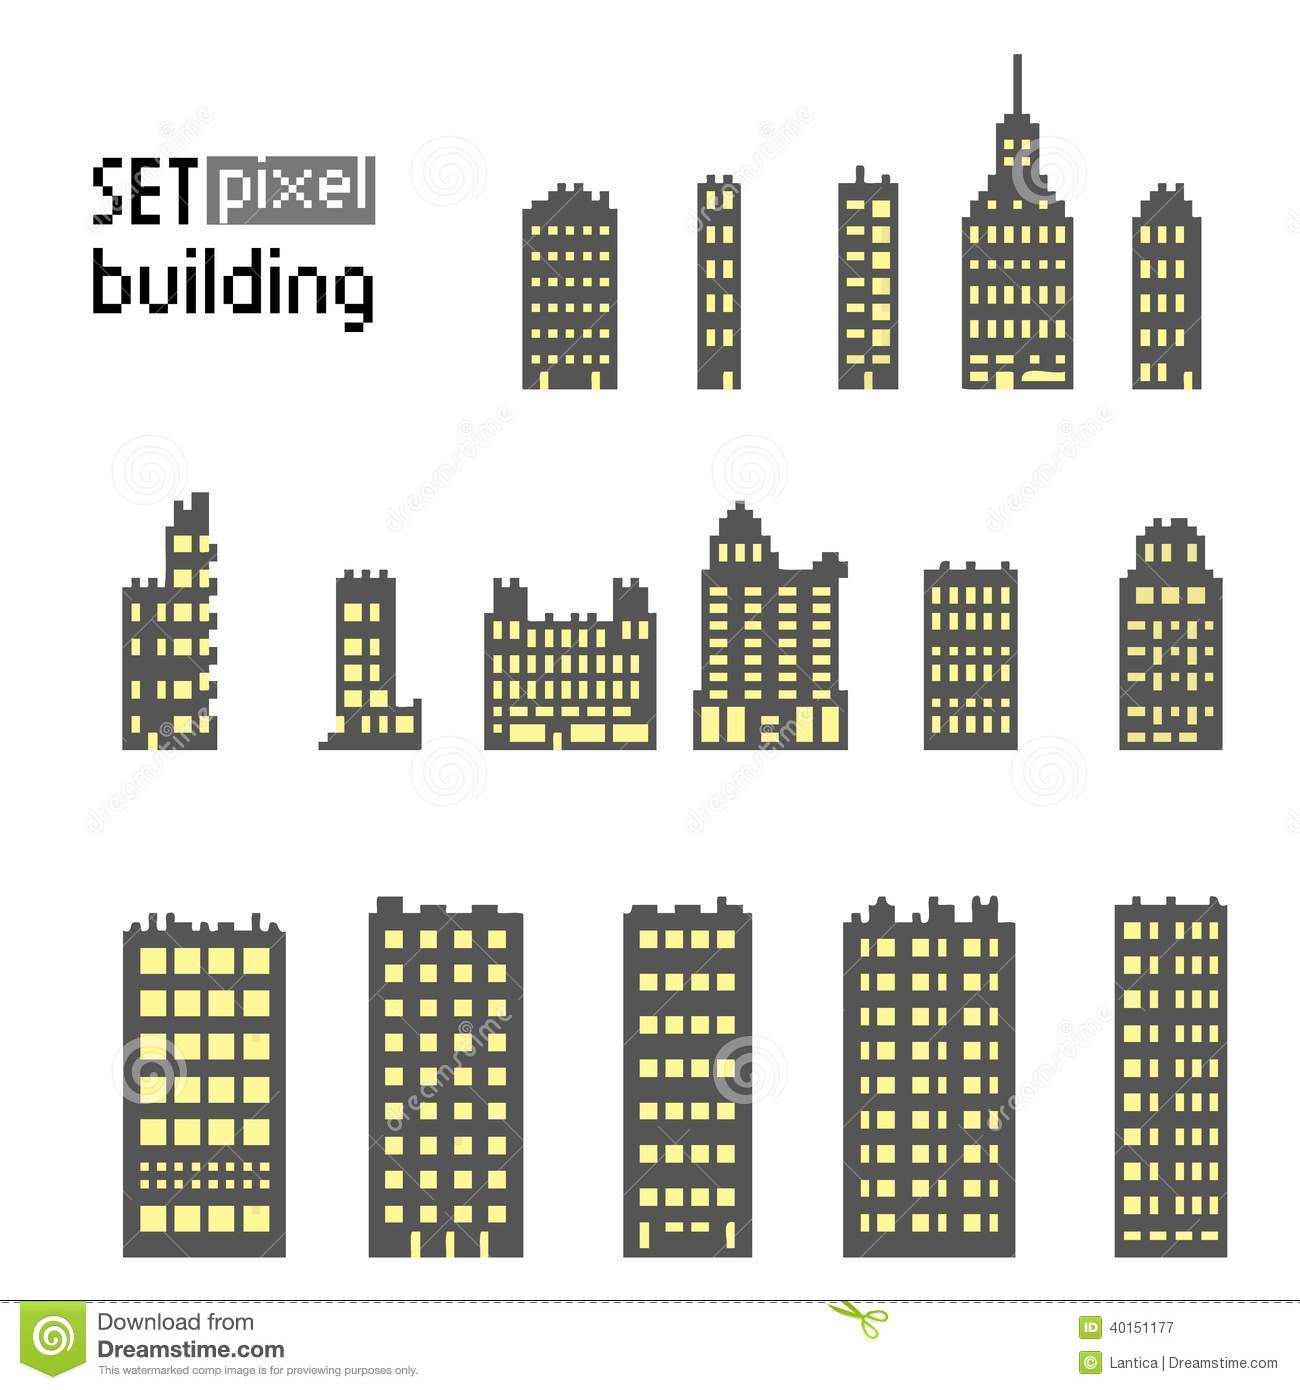 Royalty Free Stock Photography Set Pixel Building Skyscraper Isolated White Background Image40151177 besides Unity 2d Background Sprite For All Mobile Device Resolution likewise Mushroom Village Process furthermore 3005 21354 besides Flat Design. on 2d pixel house